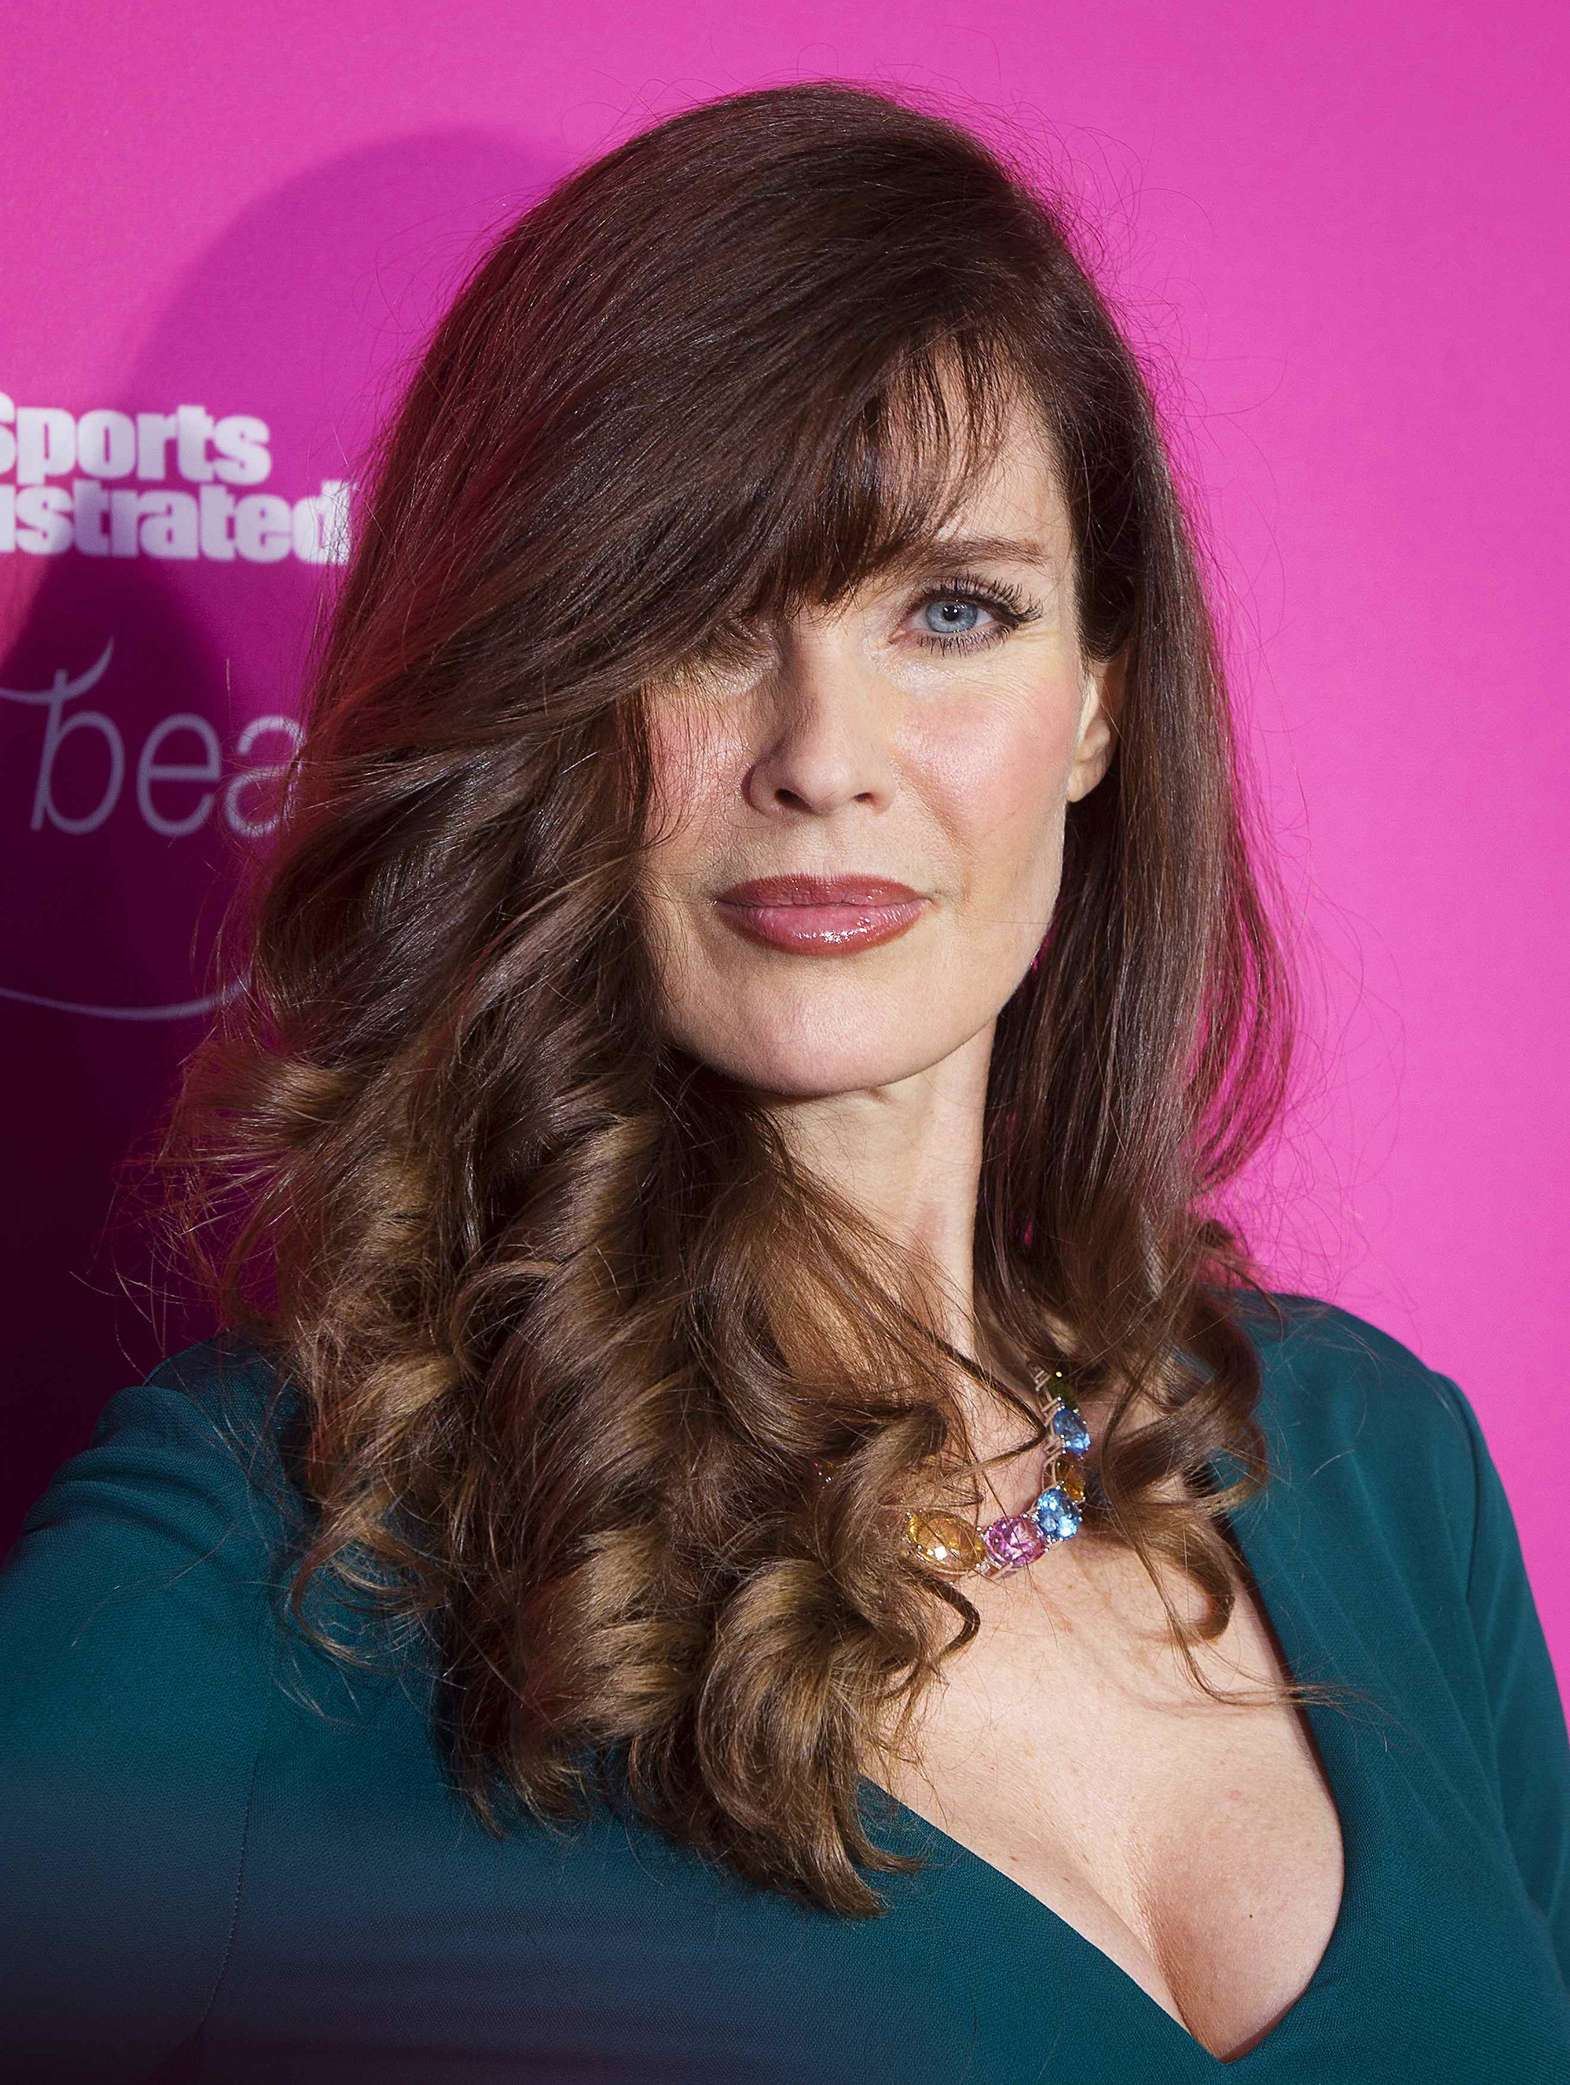 Carol Alt Sports Illustrated Swimsuit Anniversary Party